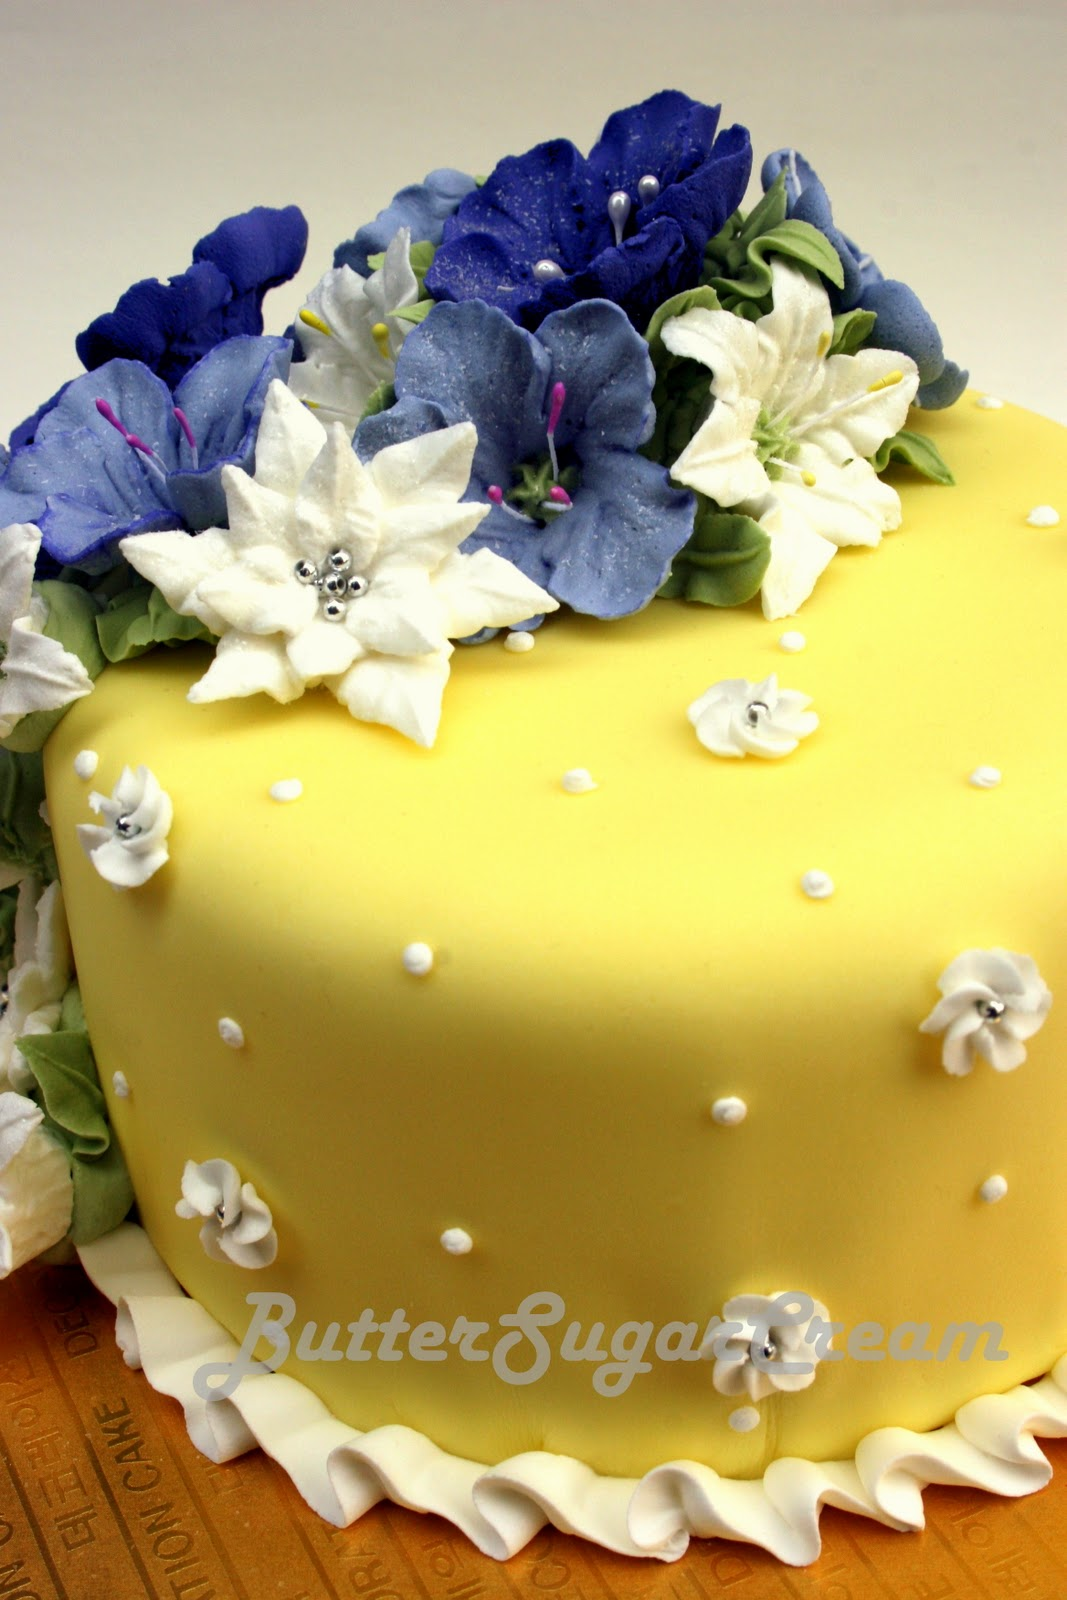 My Cake Decorating Journal: Lesson 13: Royal Icing Flowers